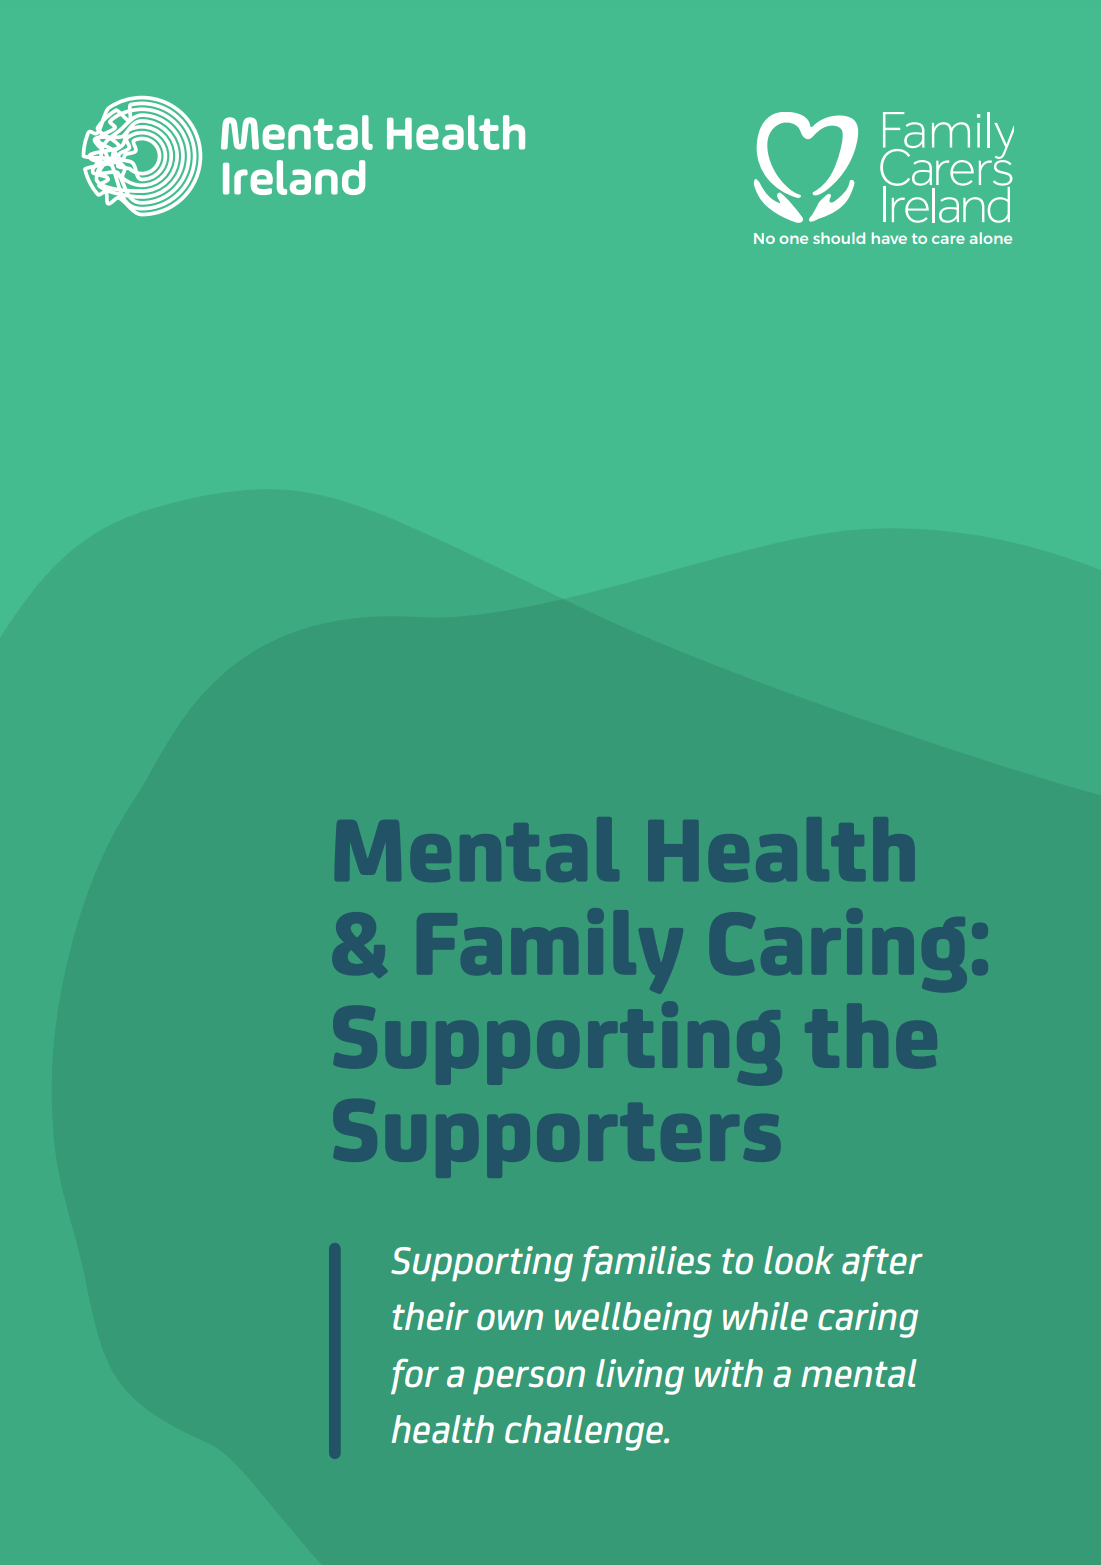 Mental Health & Family Caring - Supporting the Supporters Guide